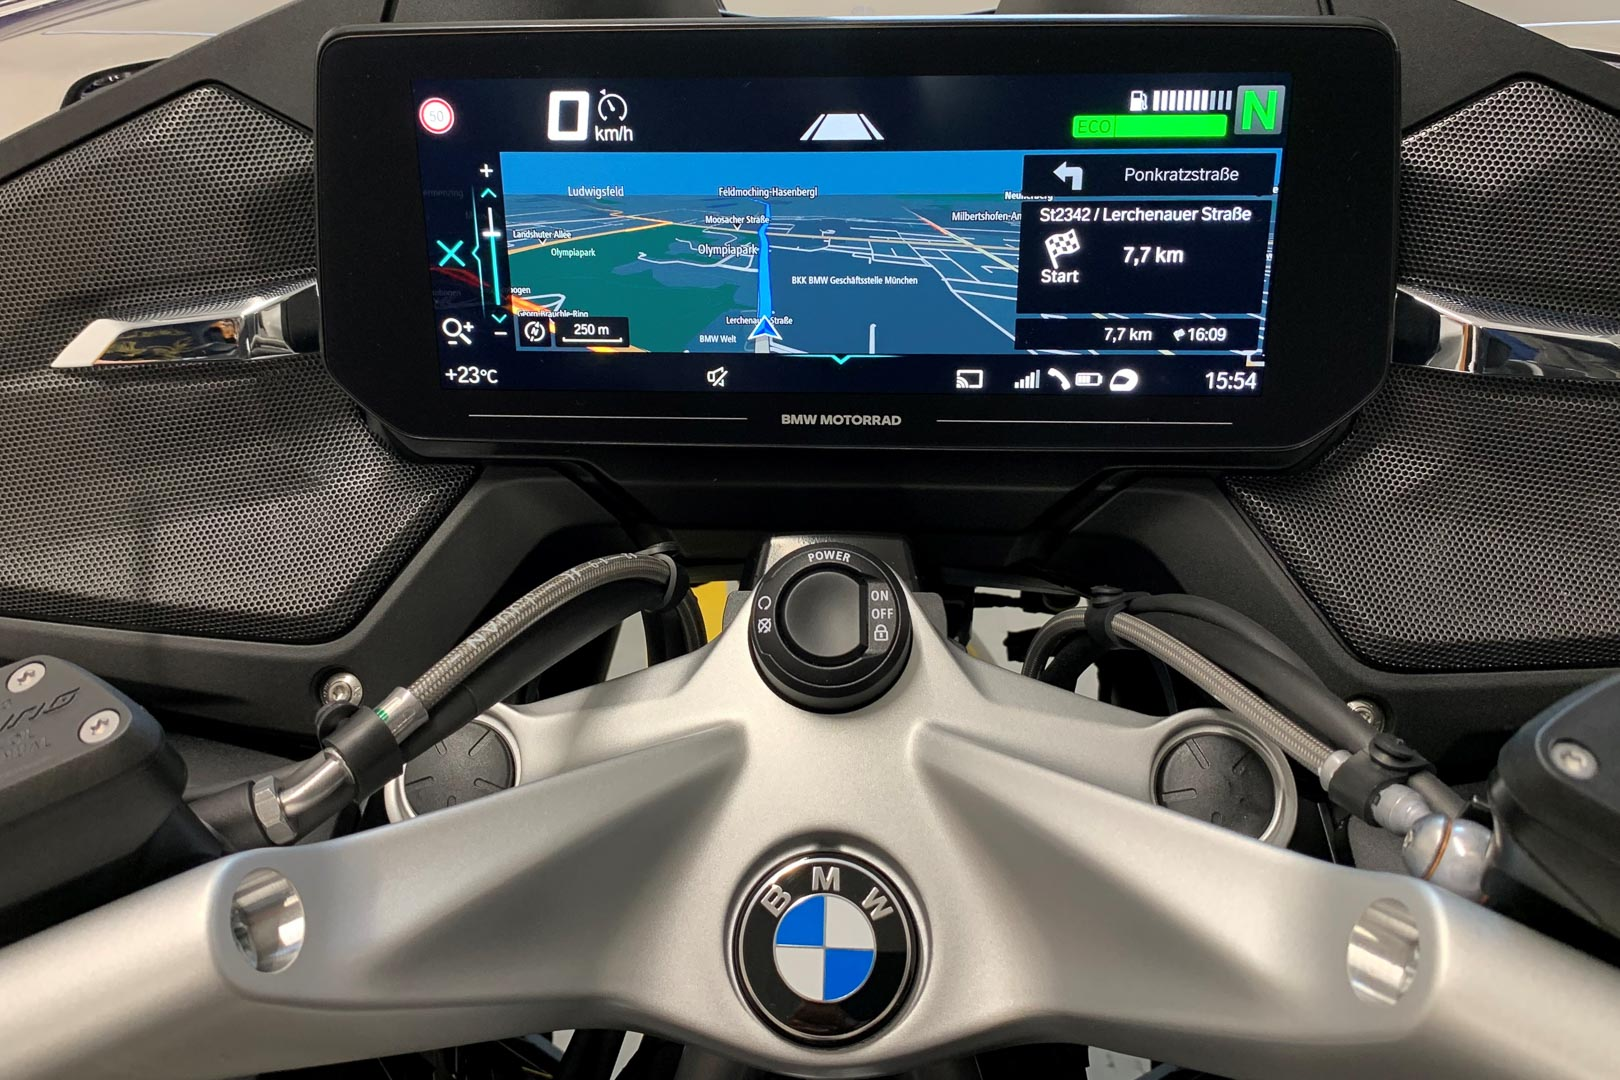 2021 BMW R 1250 RT: MSRP and Price